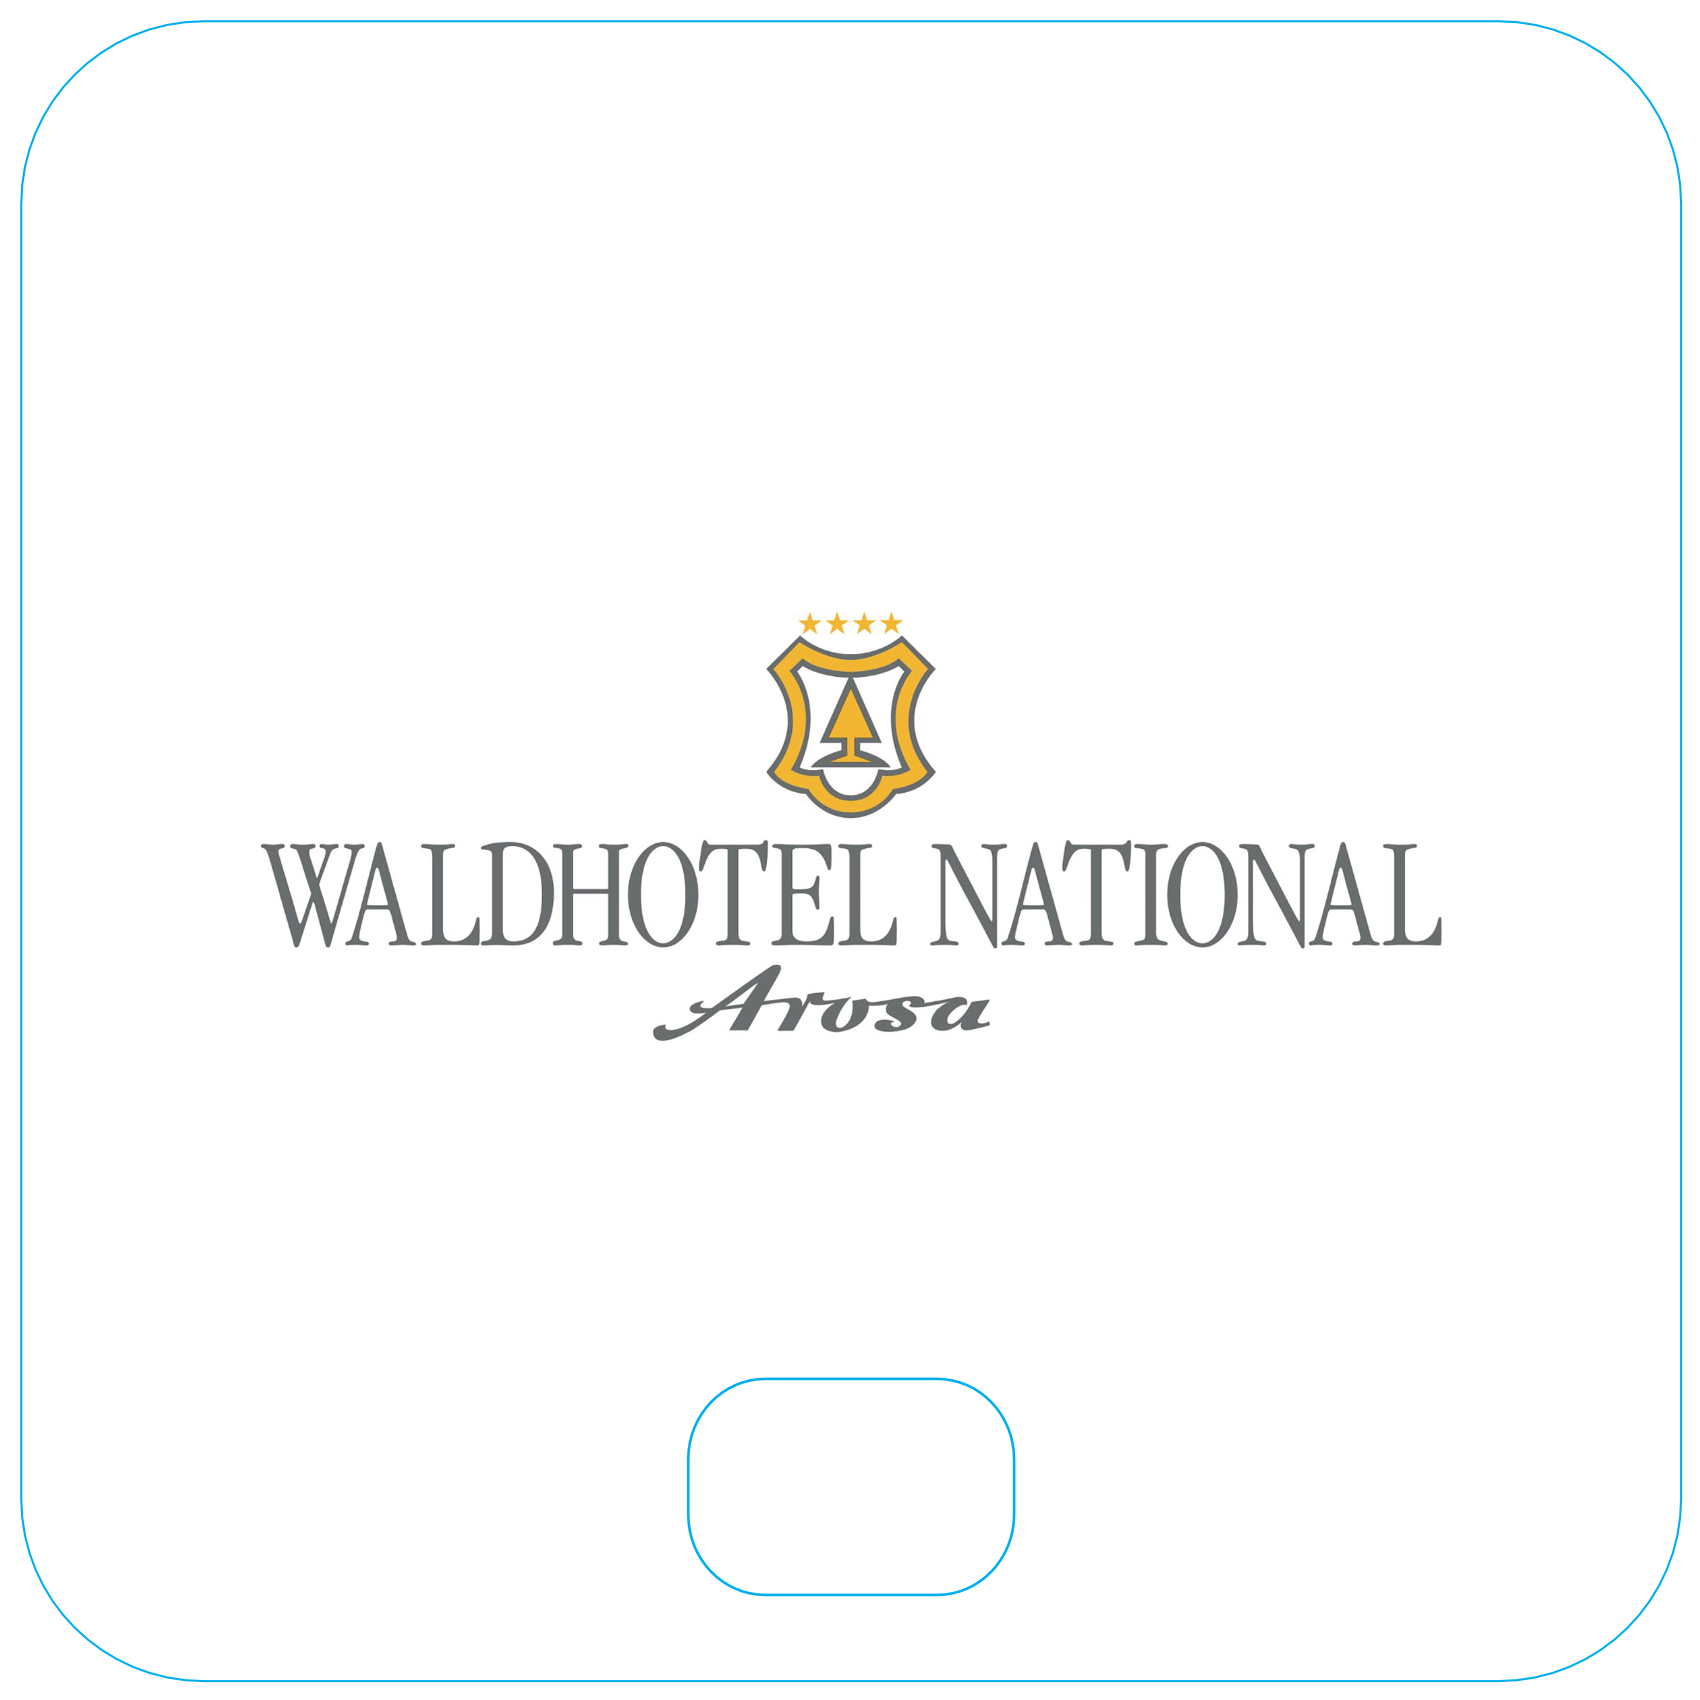 Waldhotel National Arosa 7.2 x 7.2